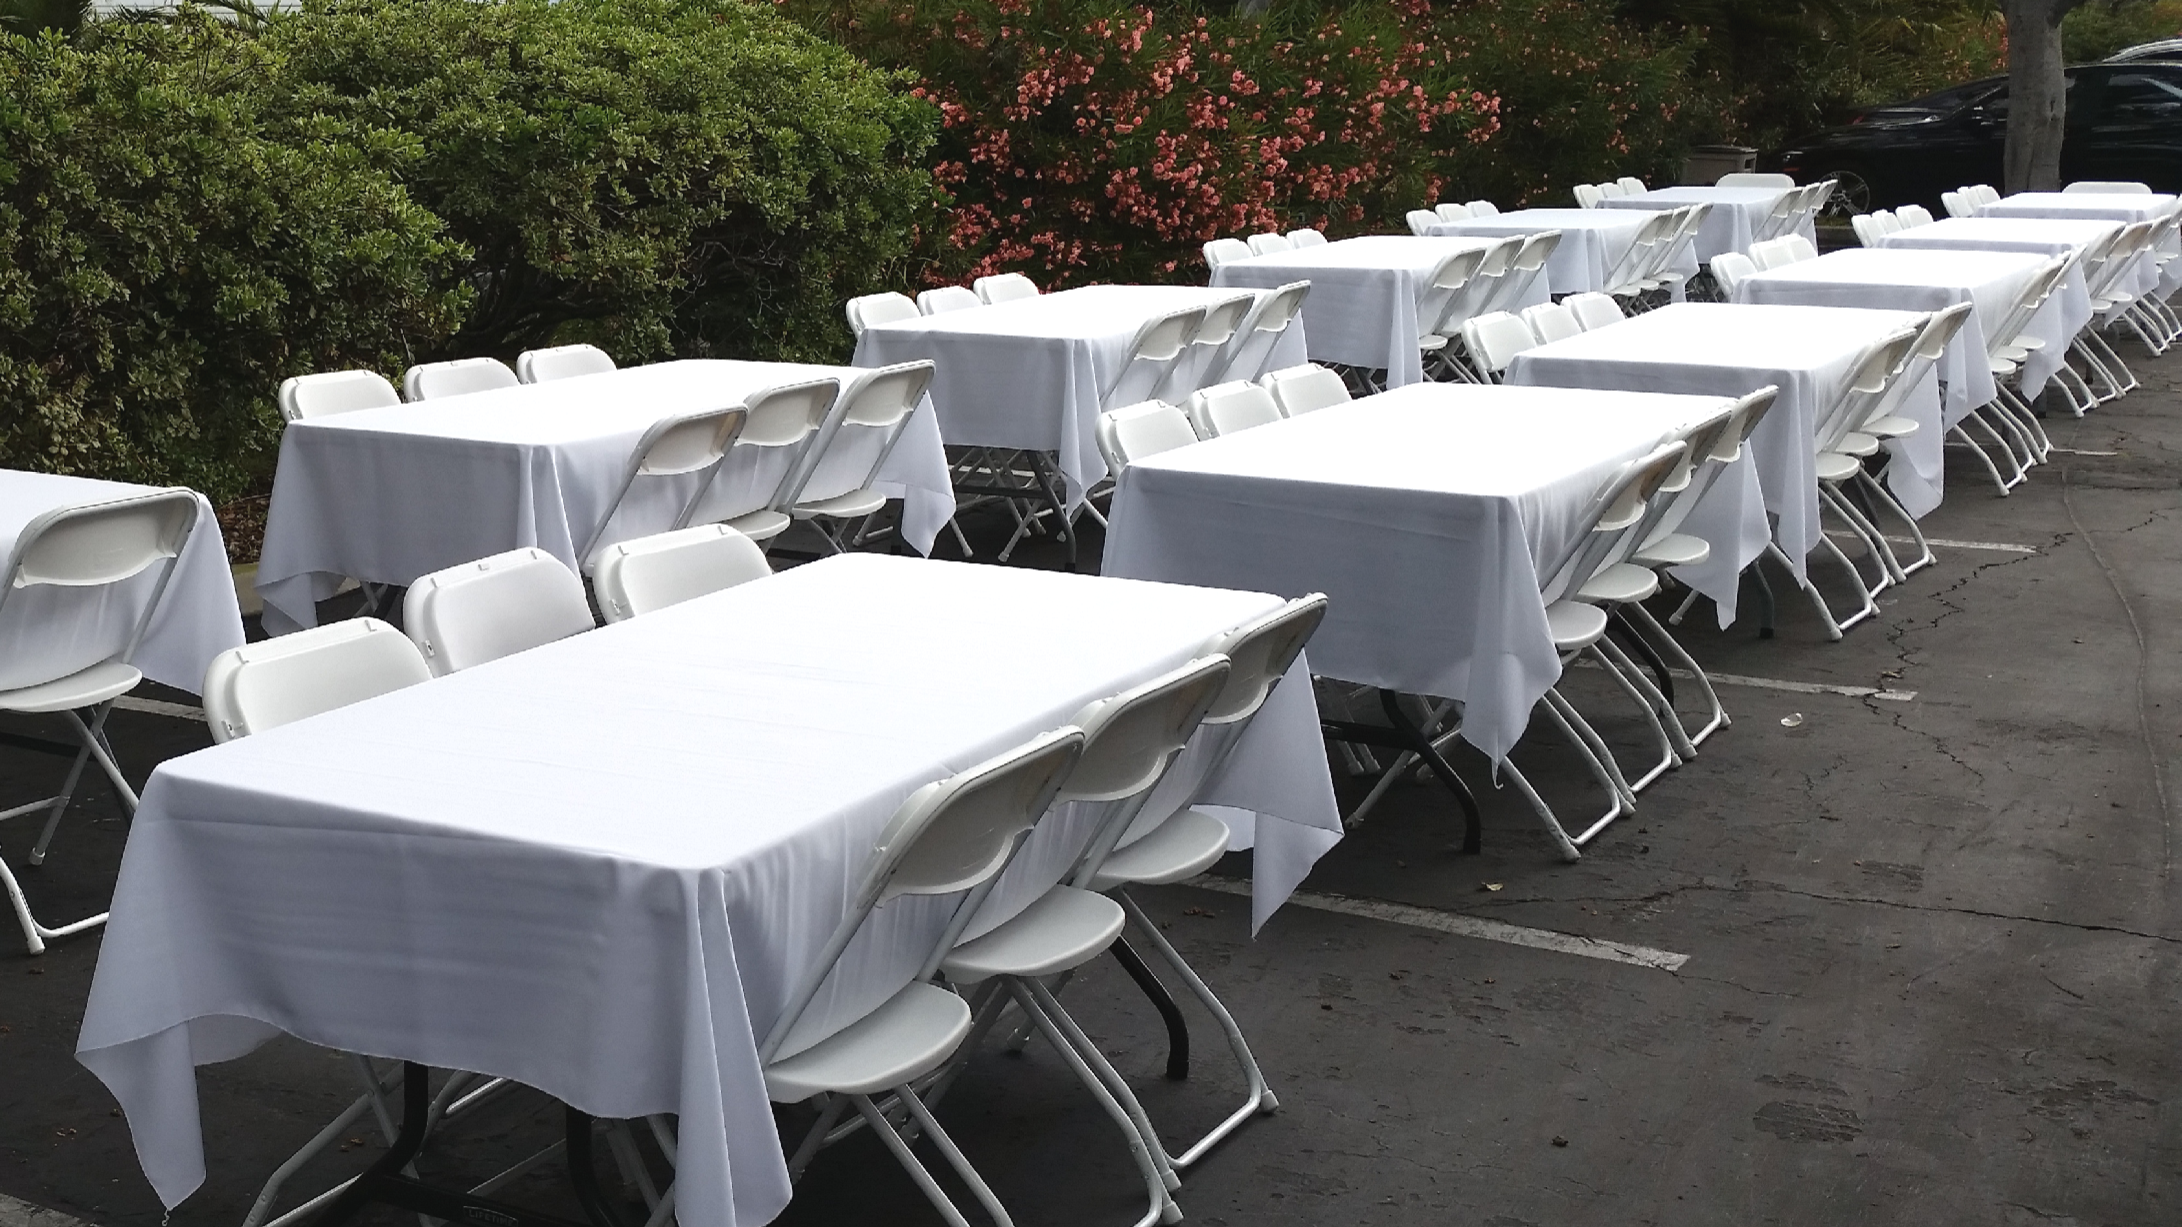 6 Ft Tables White Chairs For Rent Chairs For Rent White Folding Chairs Tablecloth Rental